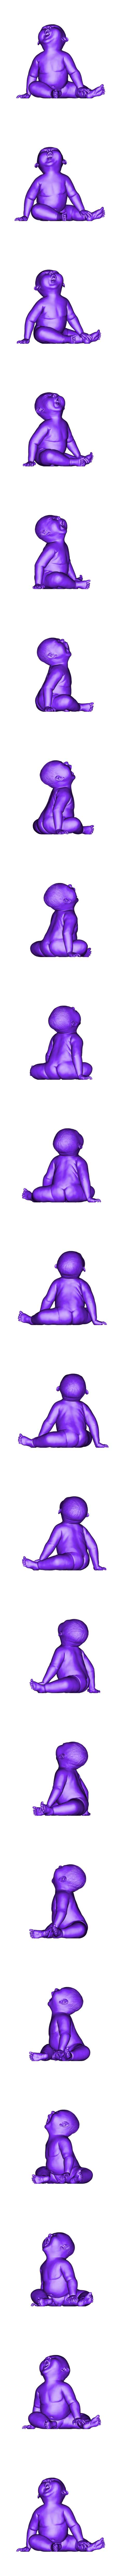 angry_baby1.stl Download OBJ file Angry Baby • 3D printing design, udograf